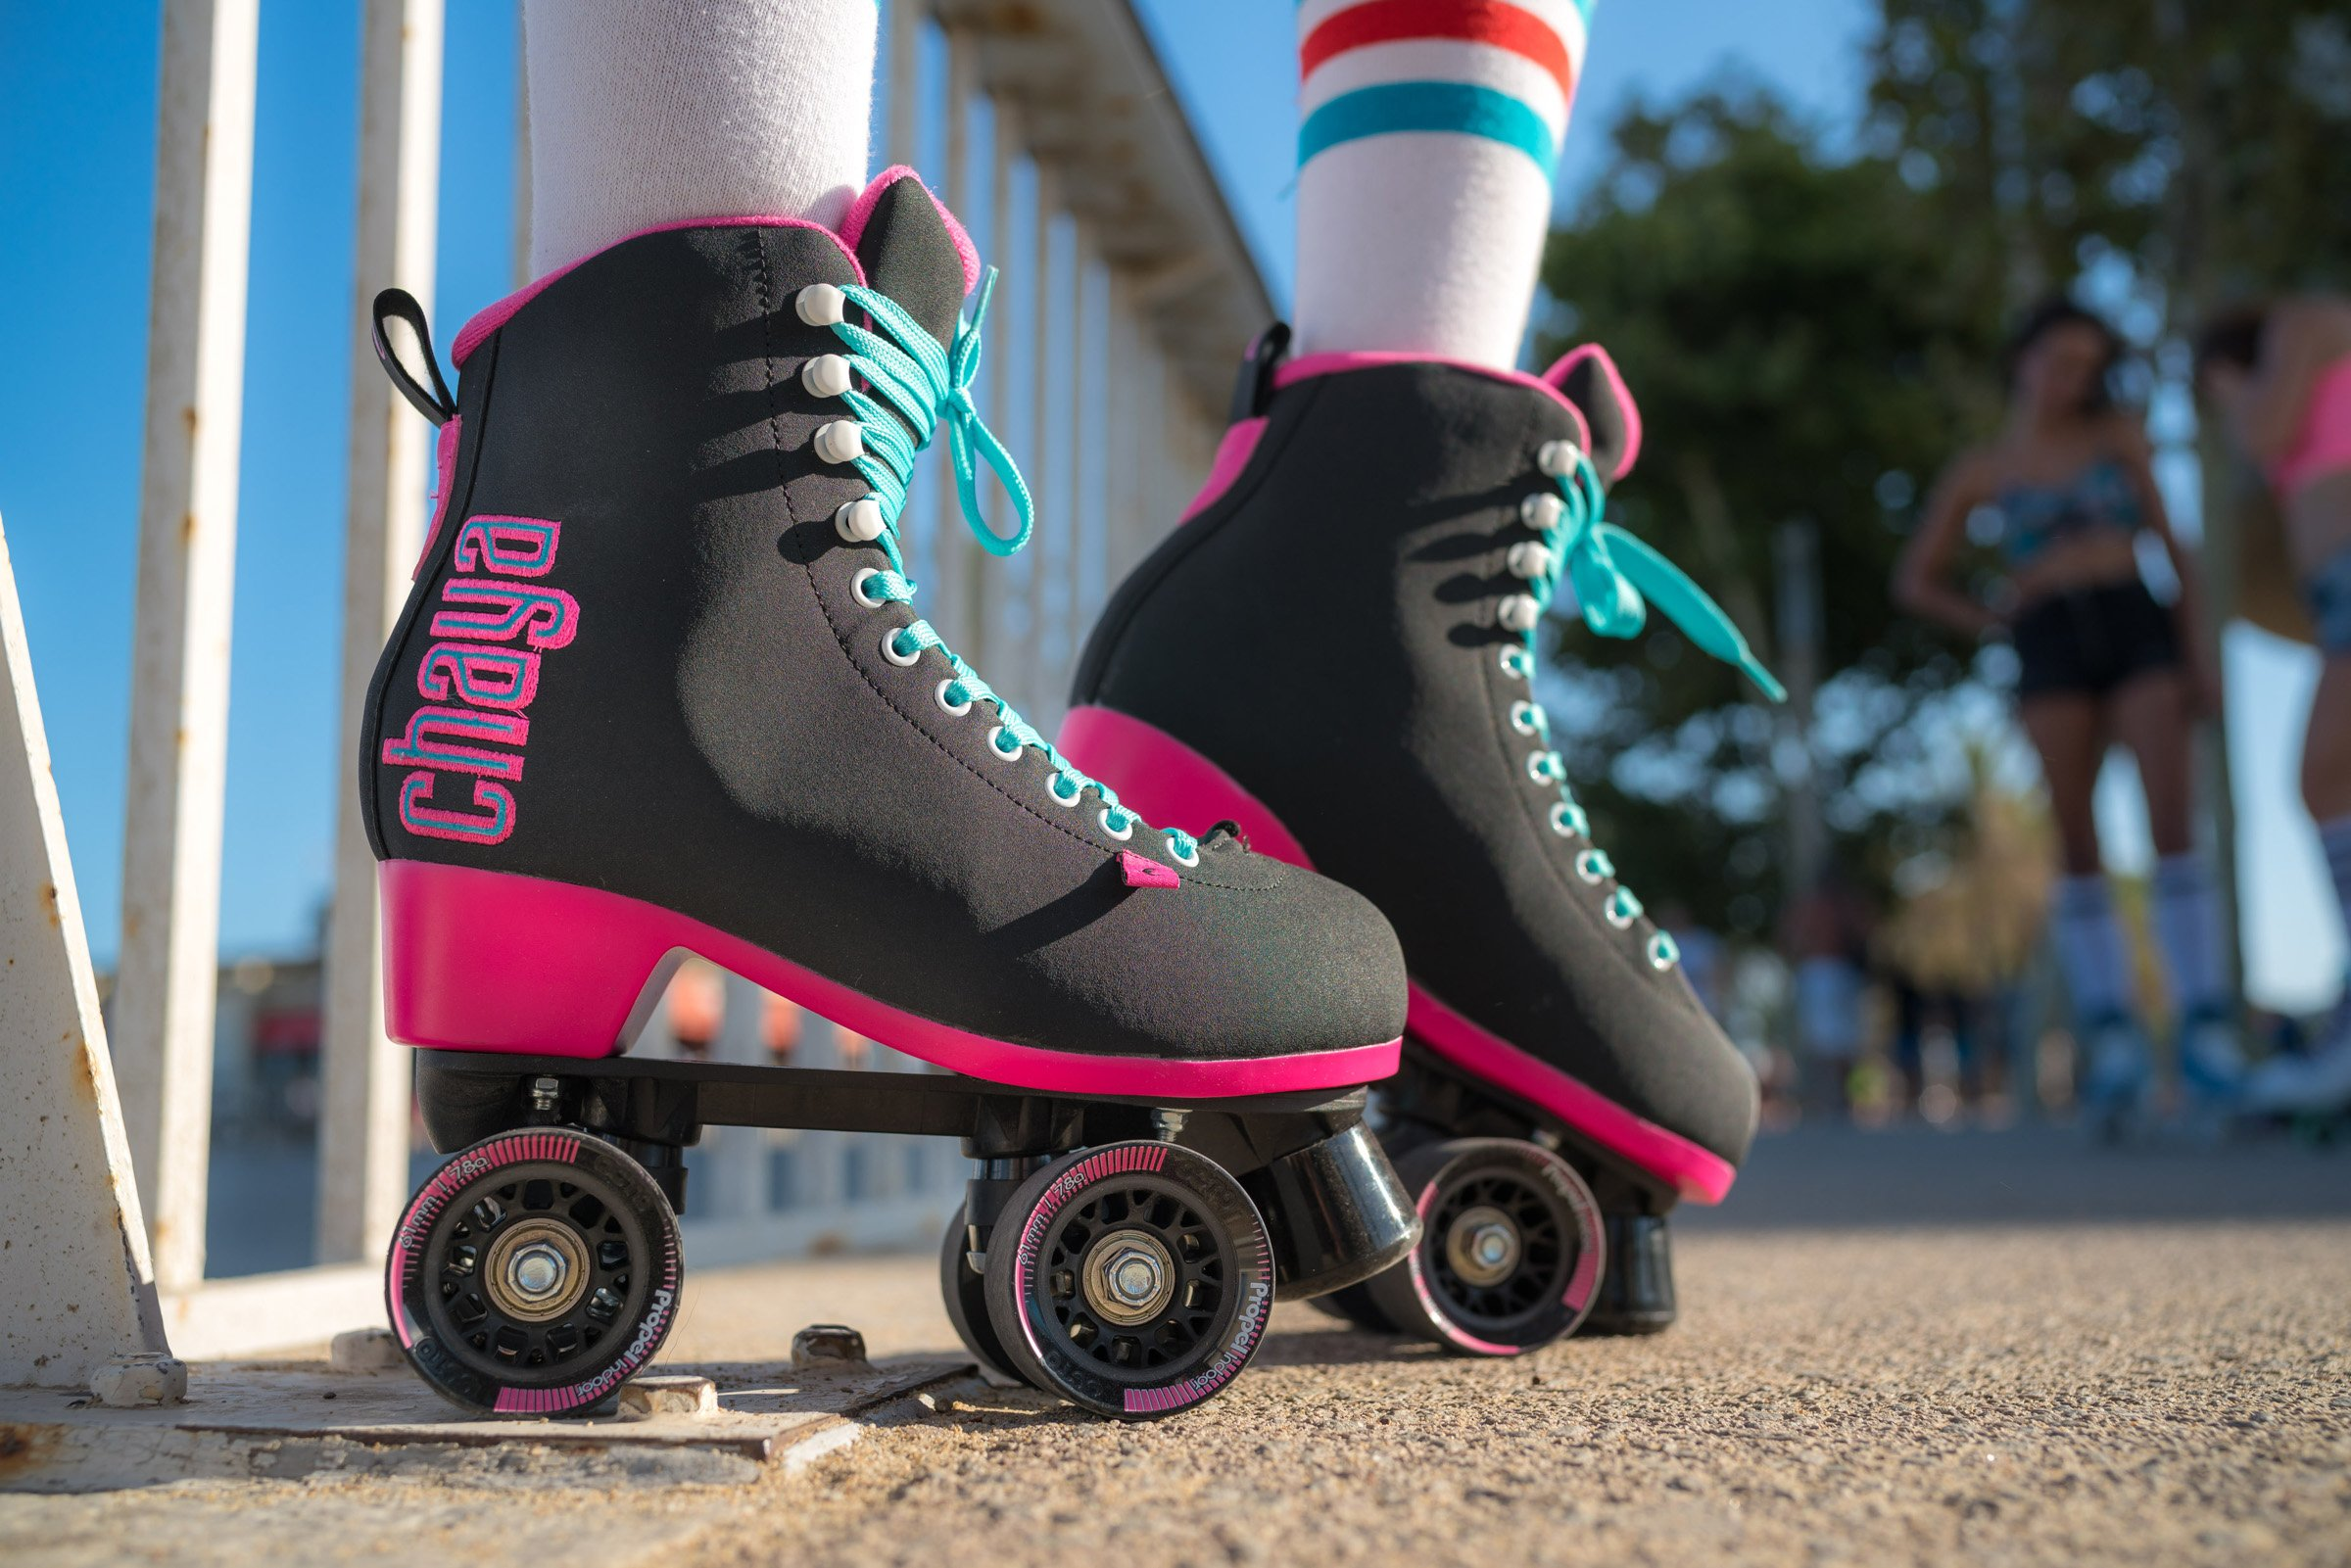 Chaya Melrose Black & Pink Quad Indoor/Outdoor Roller Skates (Euro 40 / US 9) by Chaya (Image #4)